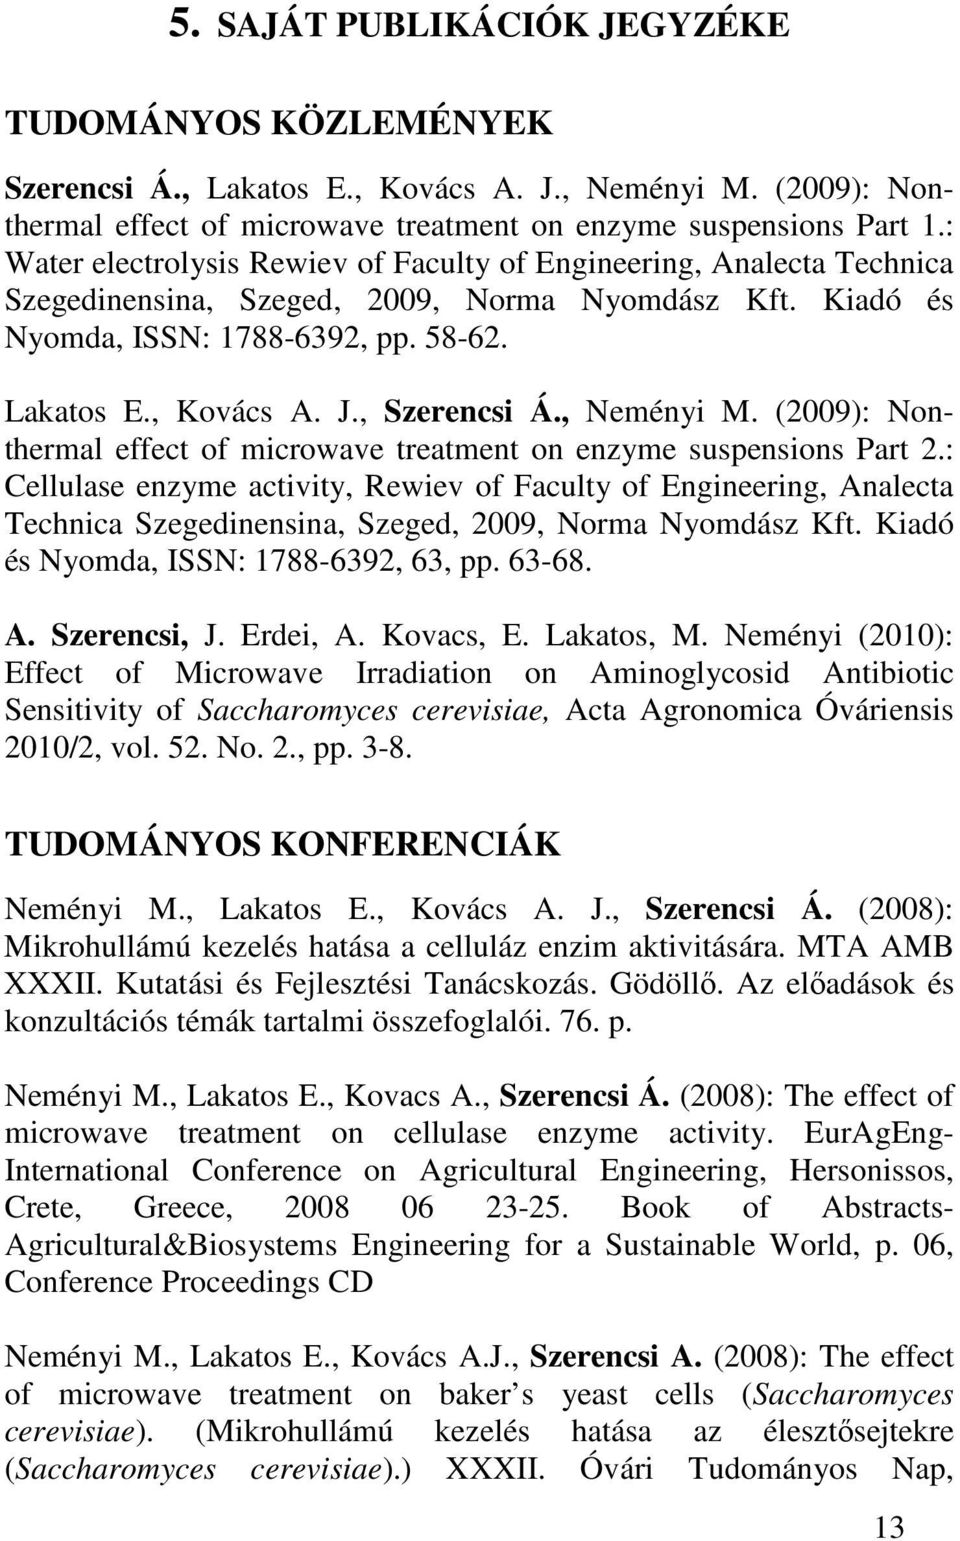 , Szerencsi Á., Neményi M. (2009): Nonthermal effect of microwave treatment on enzyme suspensions Part 2.